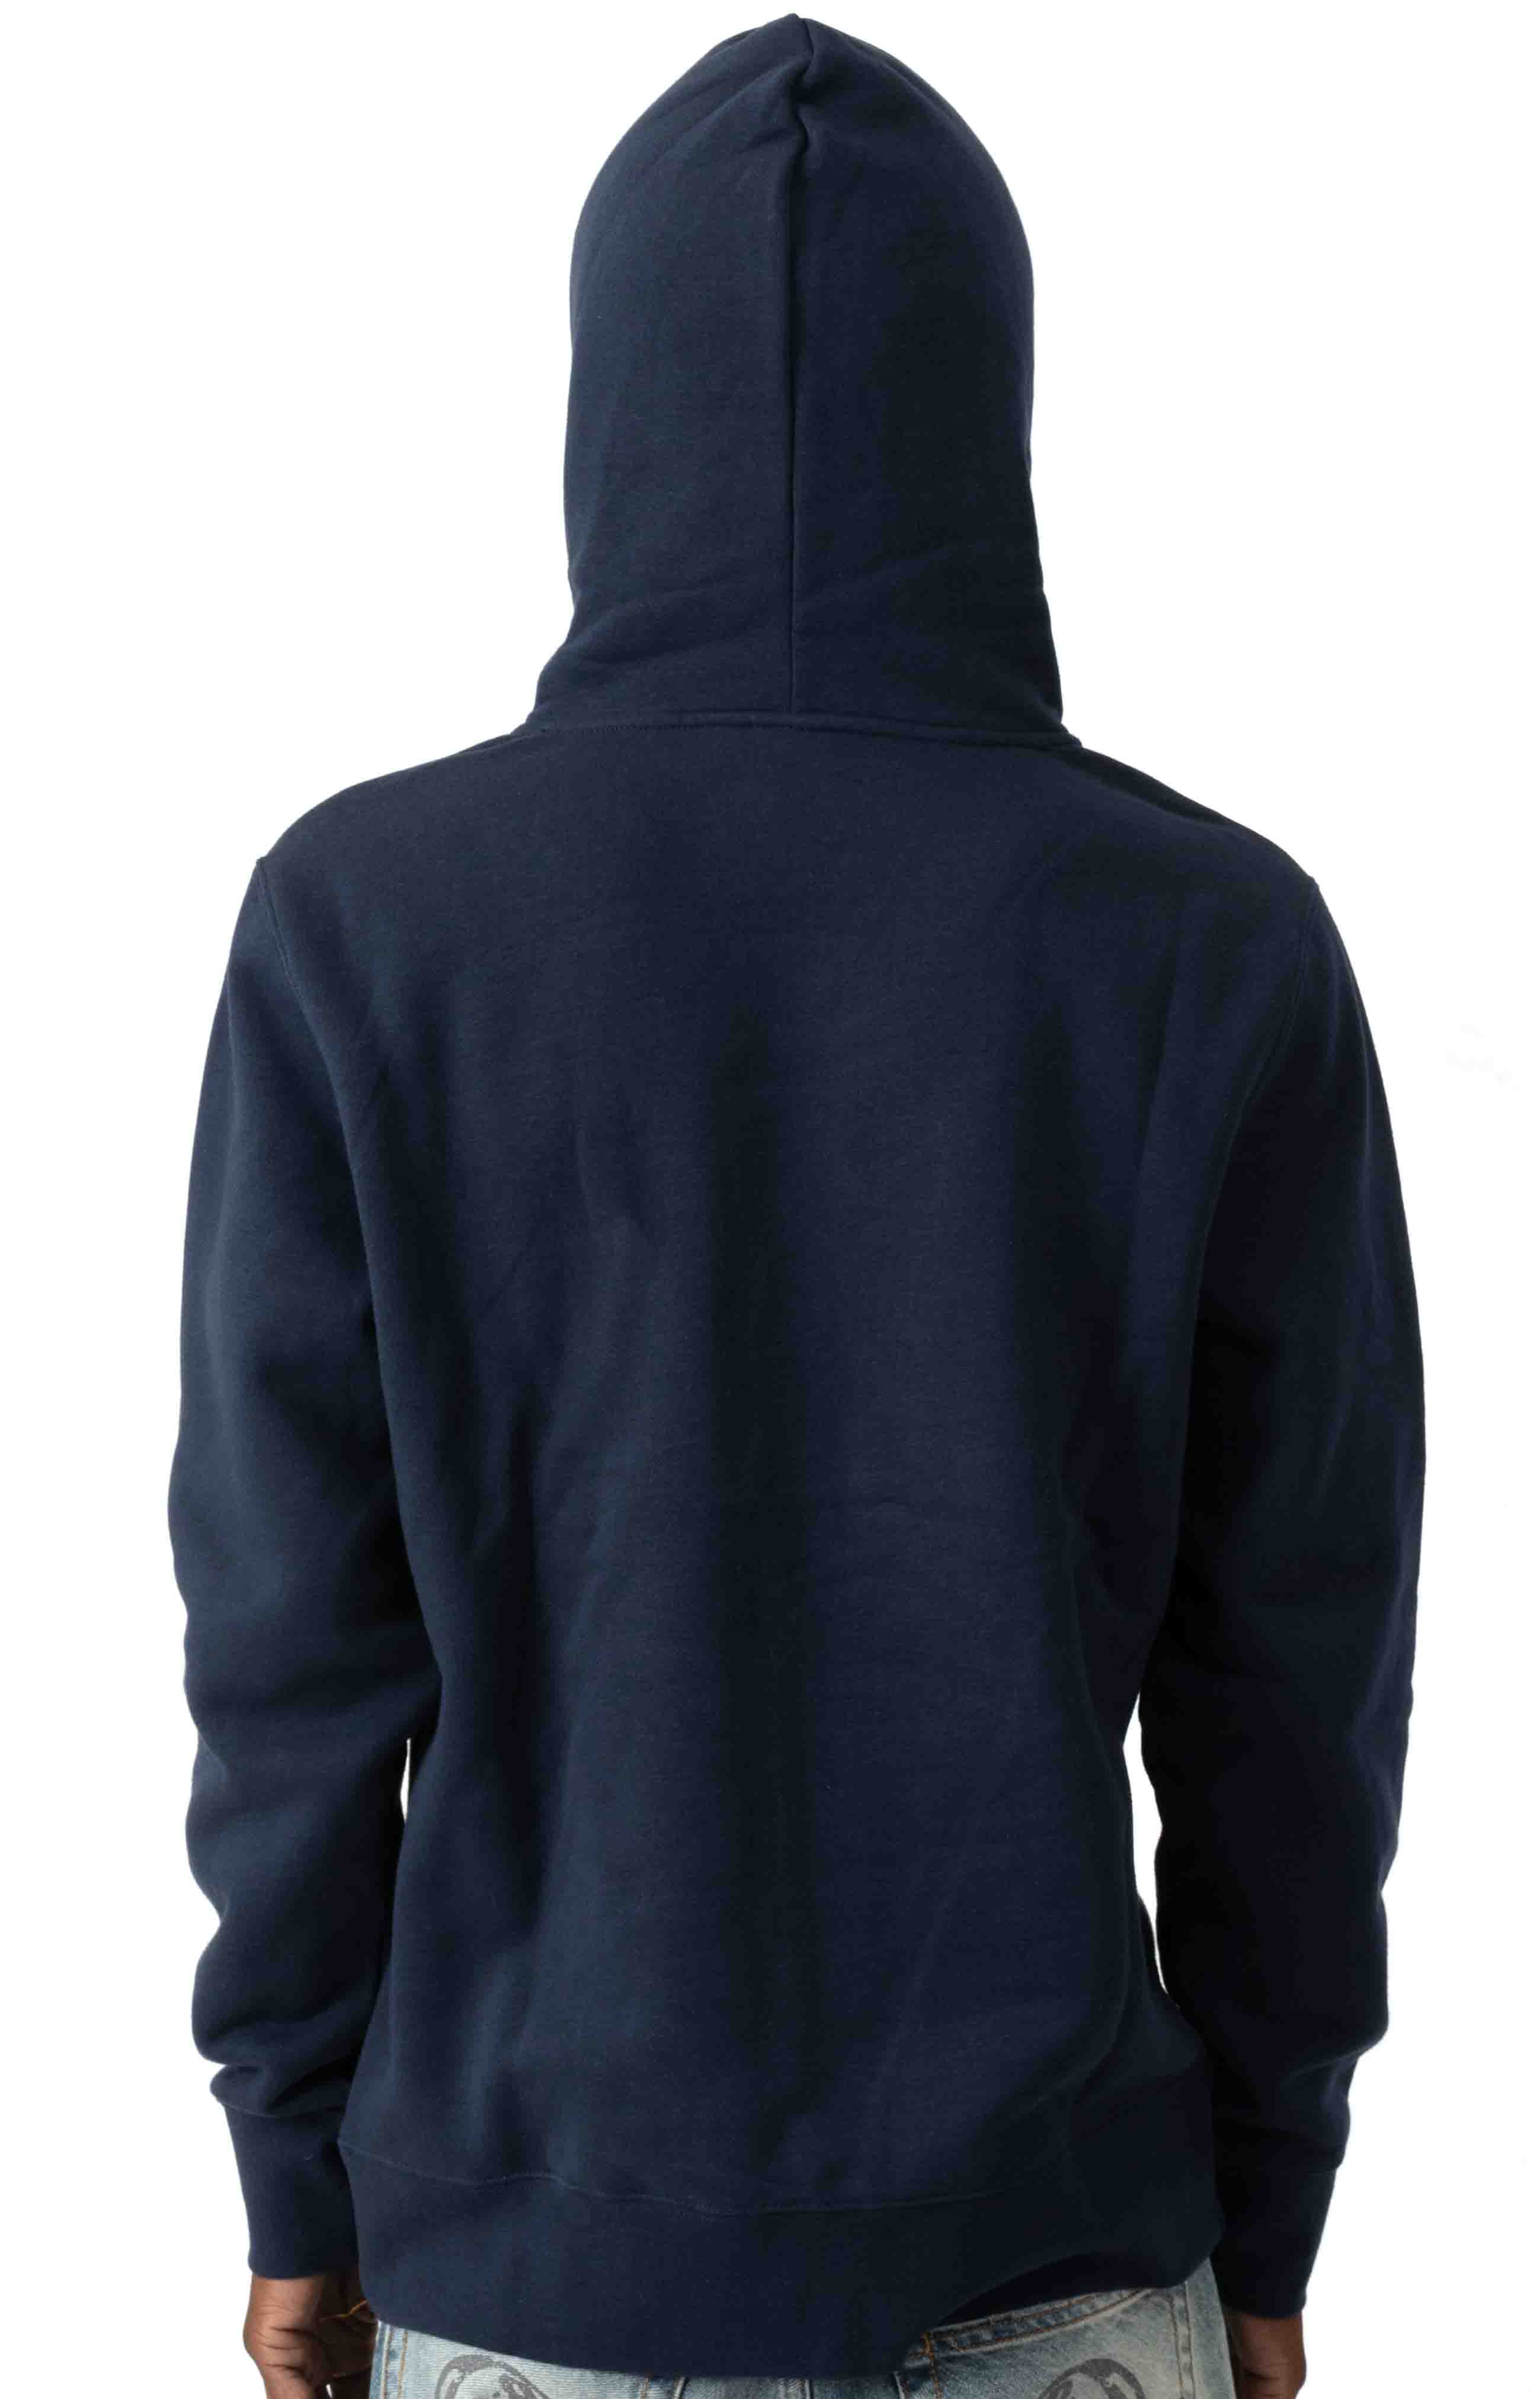 Domestic Box Embroidery Pullover Hoodie - Navy Blazer  3